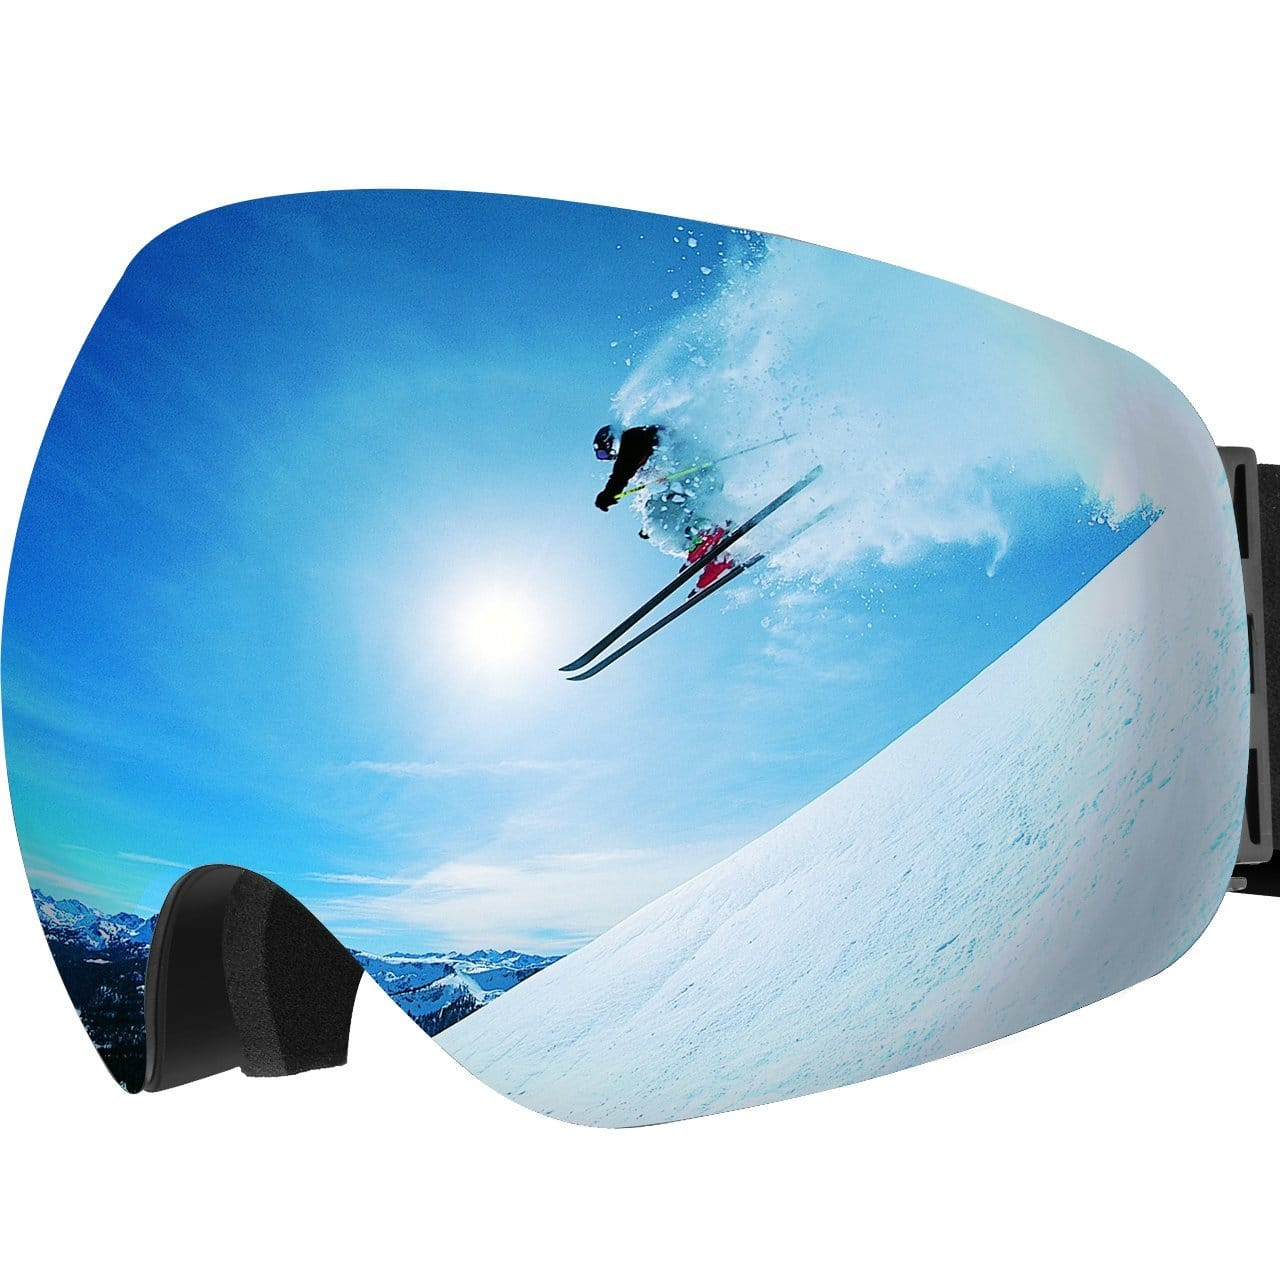 Ski Goggles with anti fog and UV Protection - $16.99 + Free Prime Shipping @ Amazon